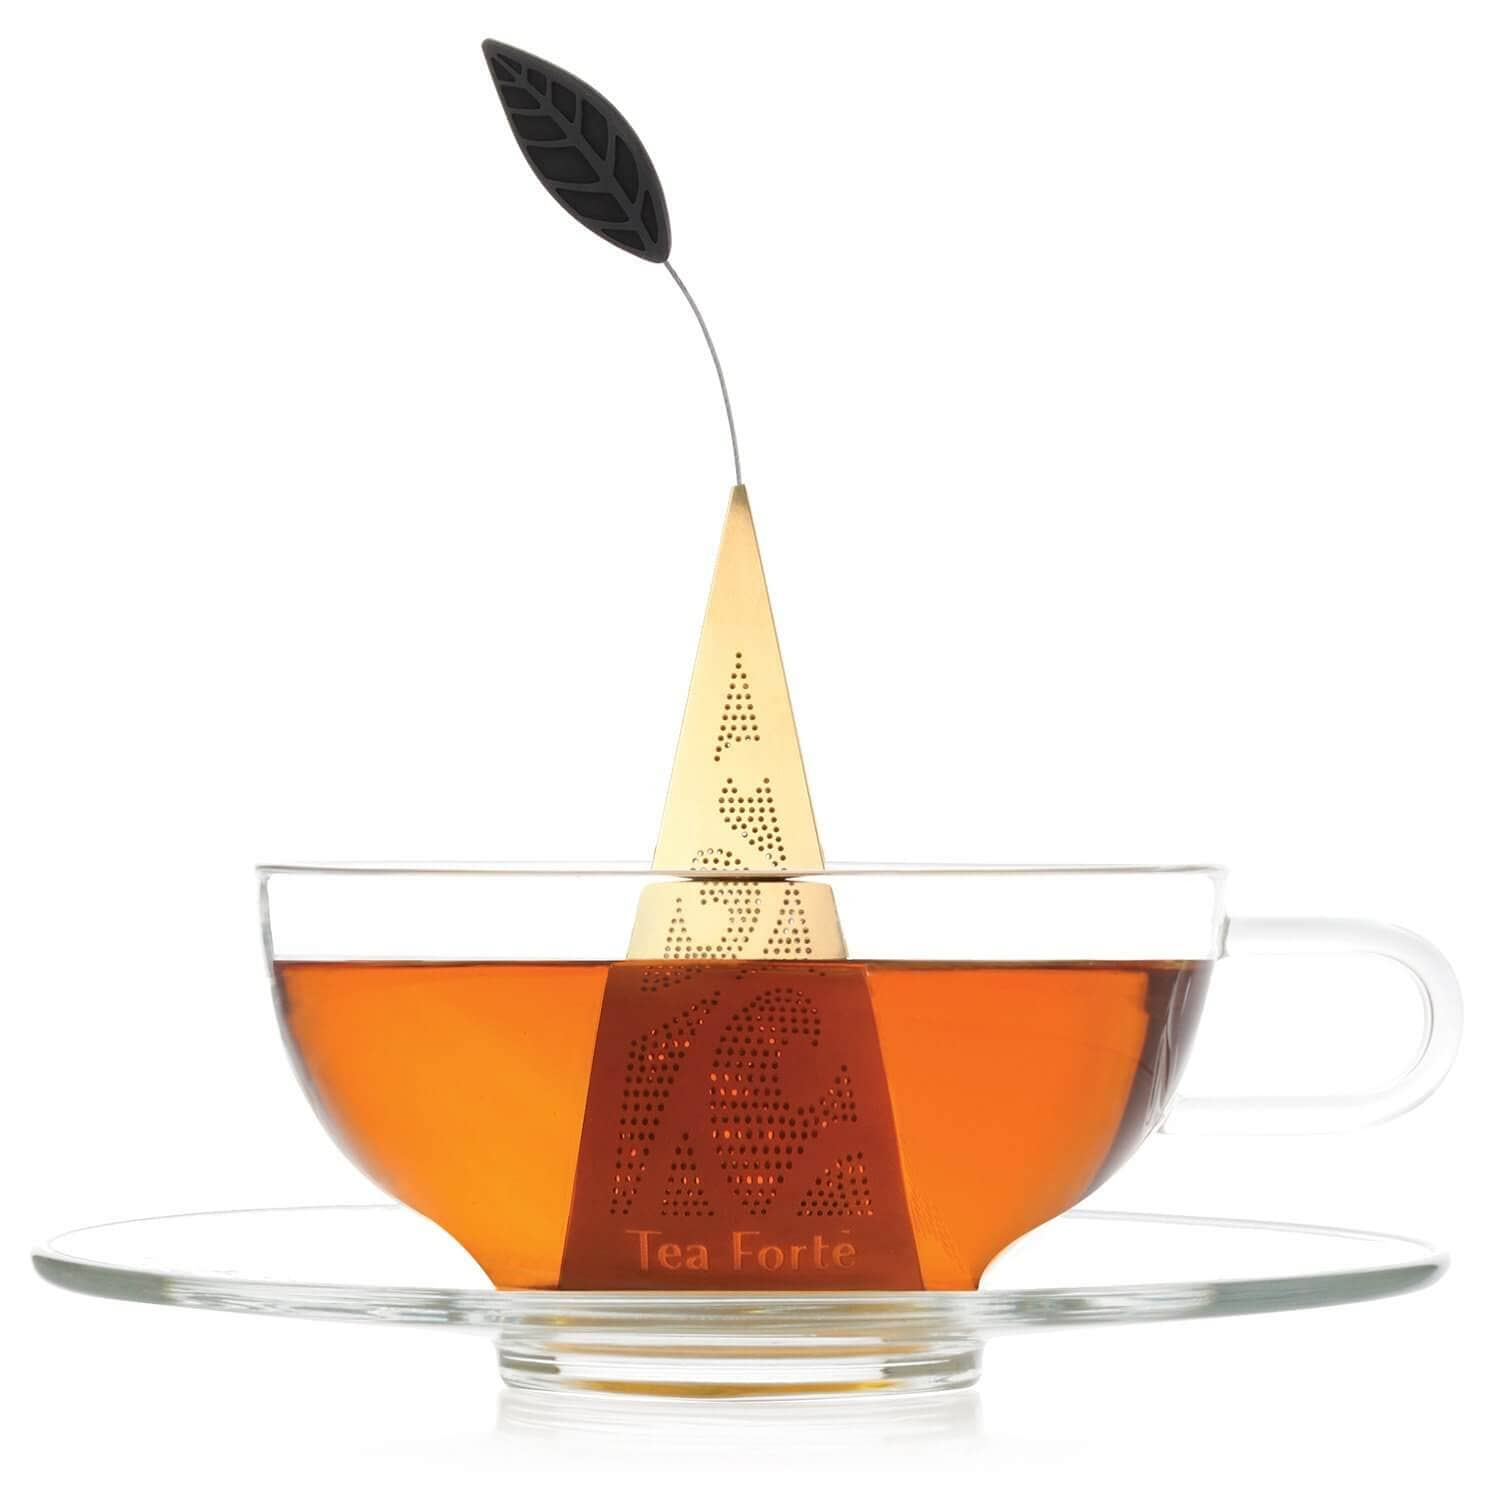 Elegant Pyramid Tea Infuser for Mom